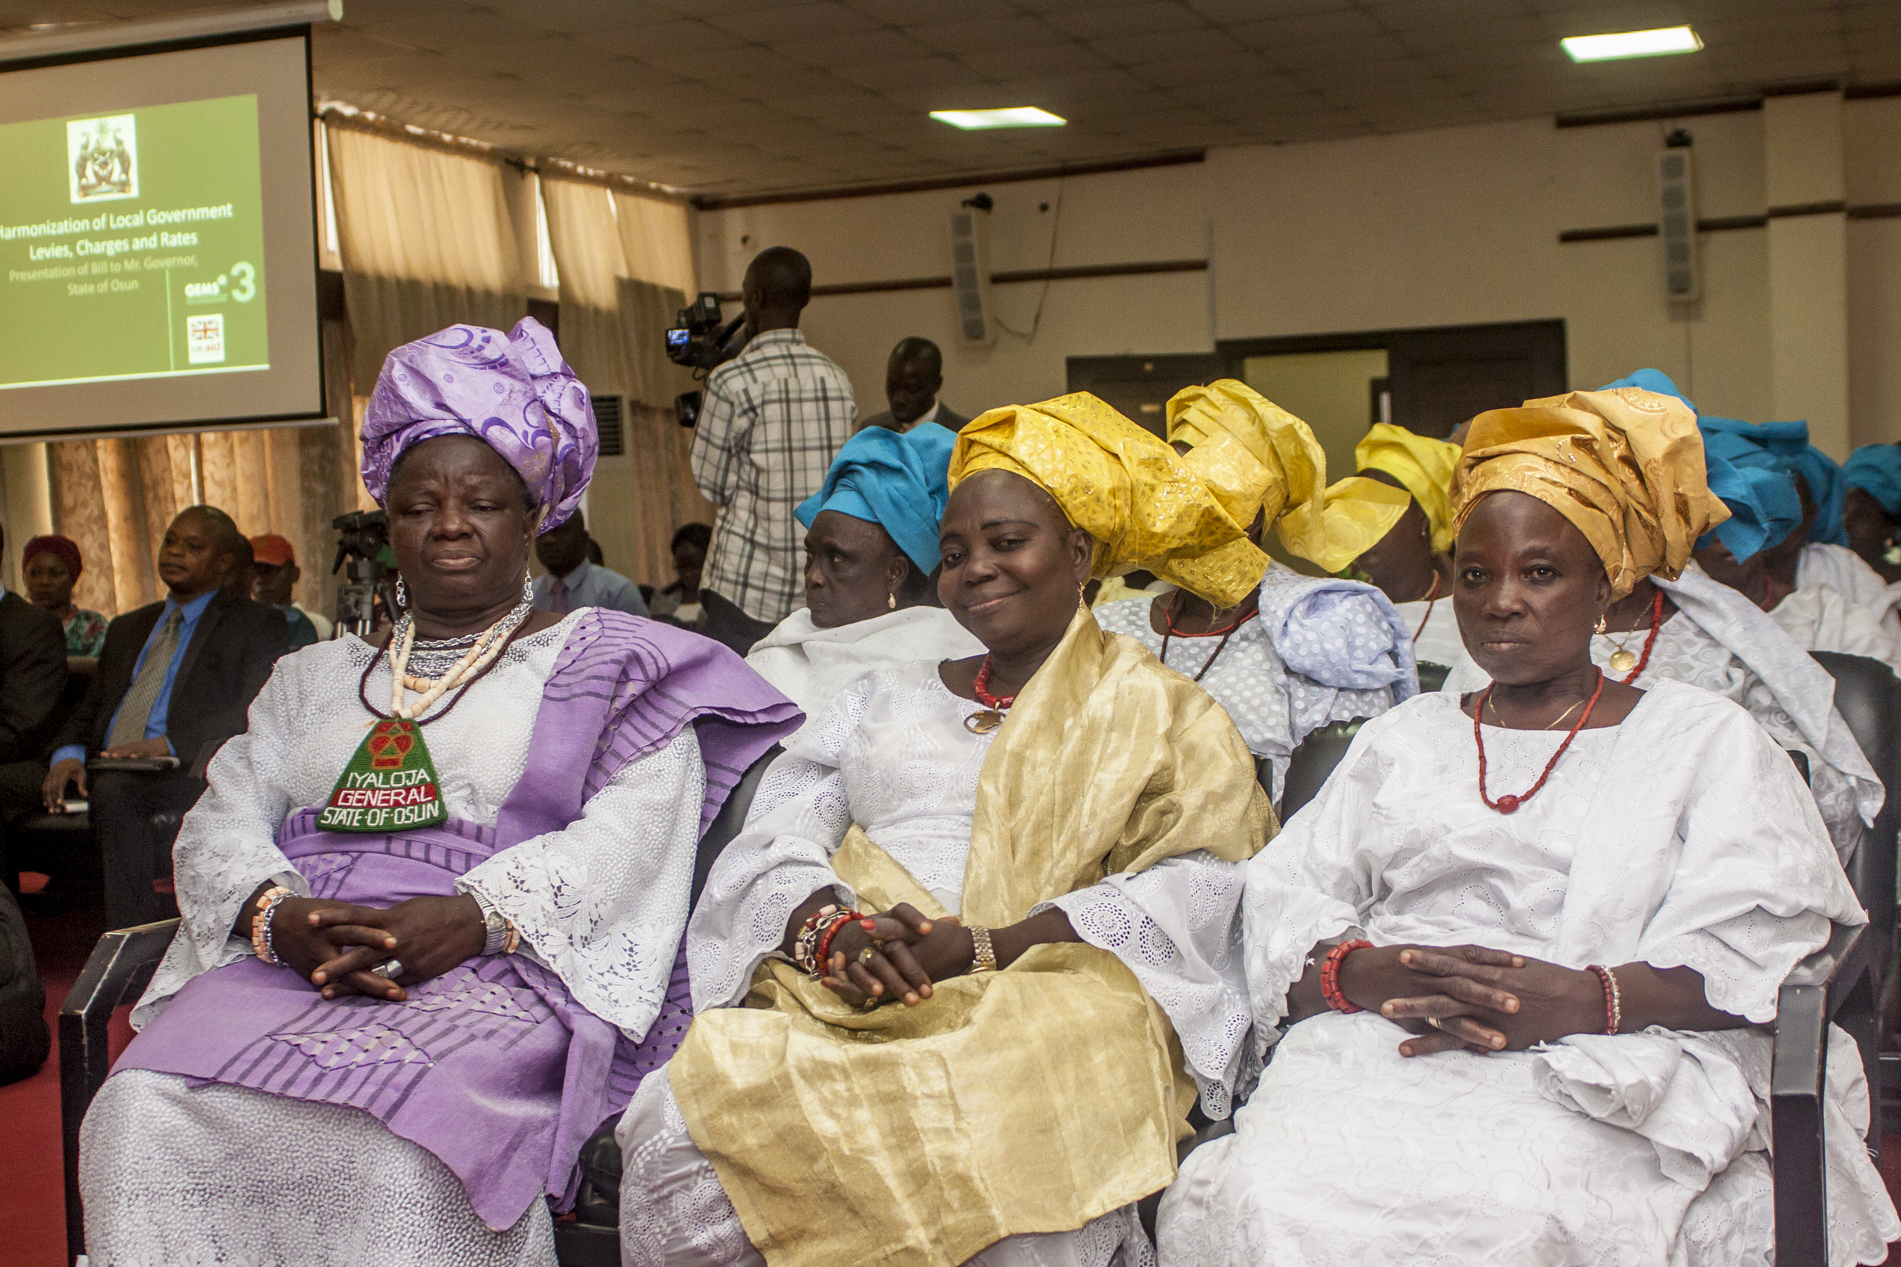 The Ijaloja General of the state of Osun and her entourage at the presentation of the bill